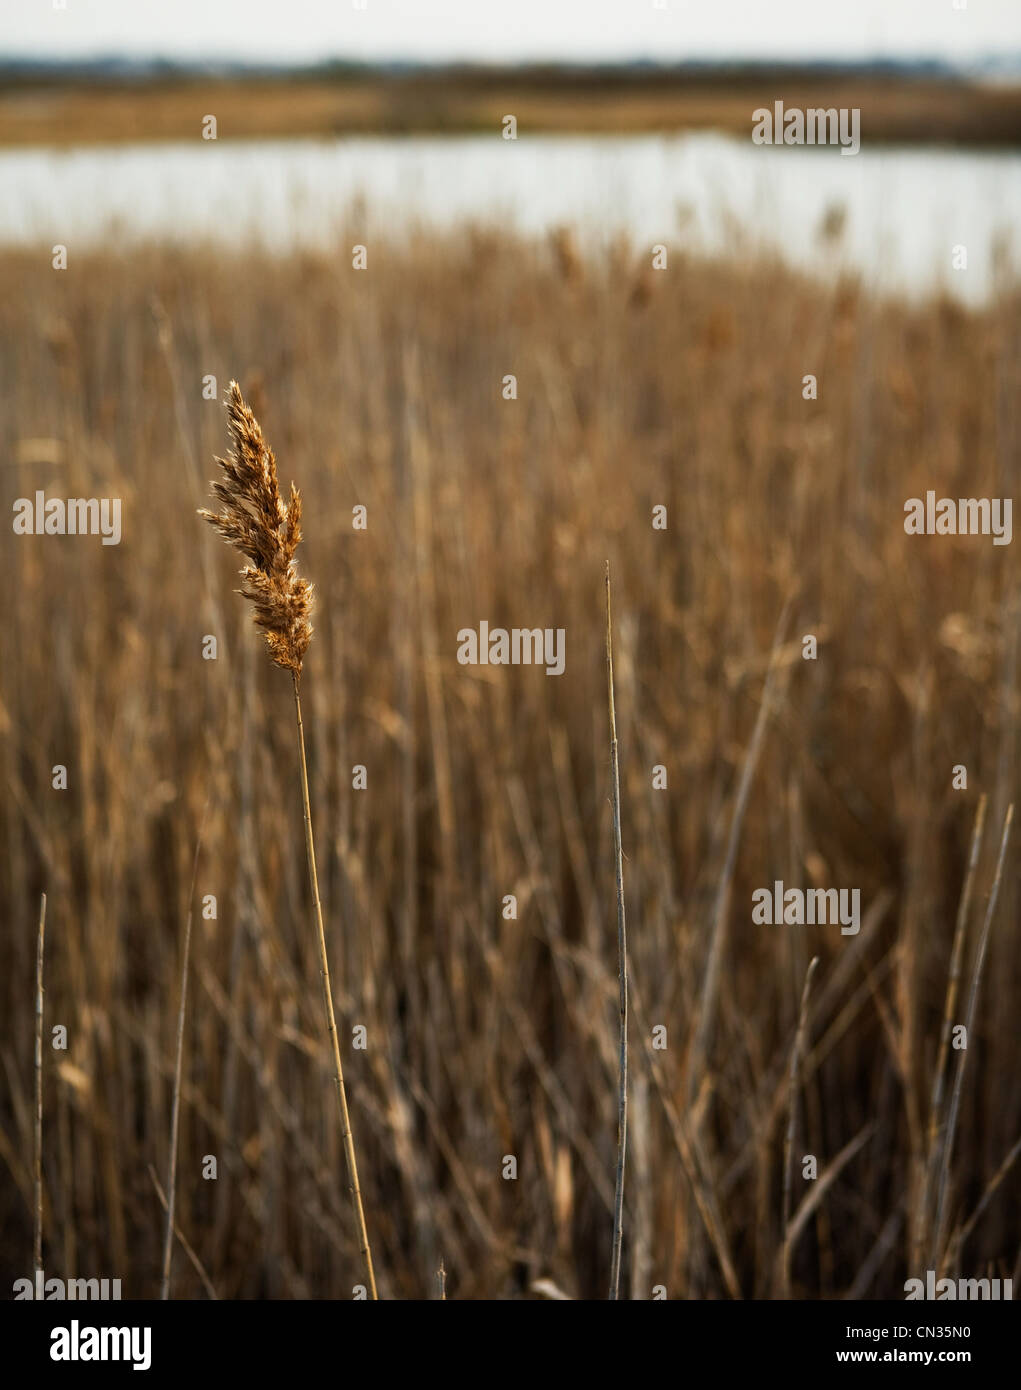 Dry grass, close up - Stock Image